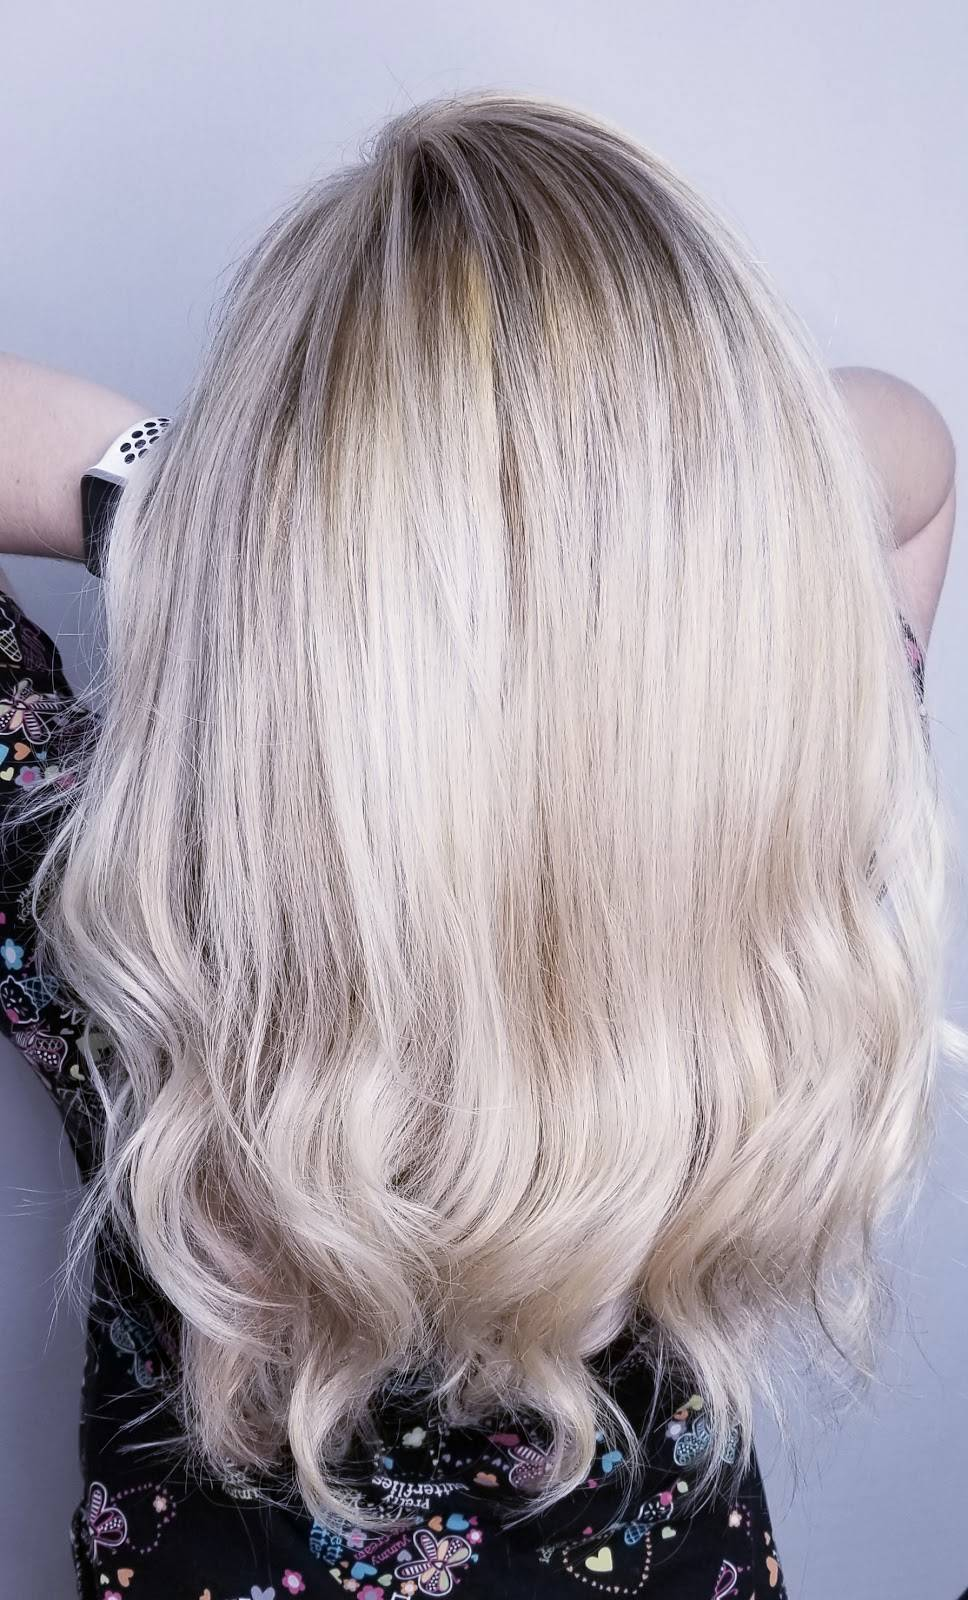 Off with your Hair Salon - hair care  | Photo 4 of 9 | Address: 2736 Charlestown Rd Suite 3, New Albany, IN 47150, USA | Phone: (812) 725-7885